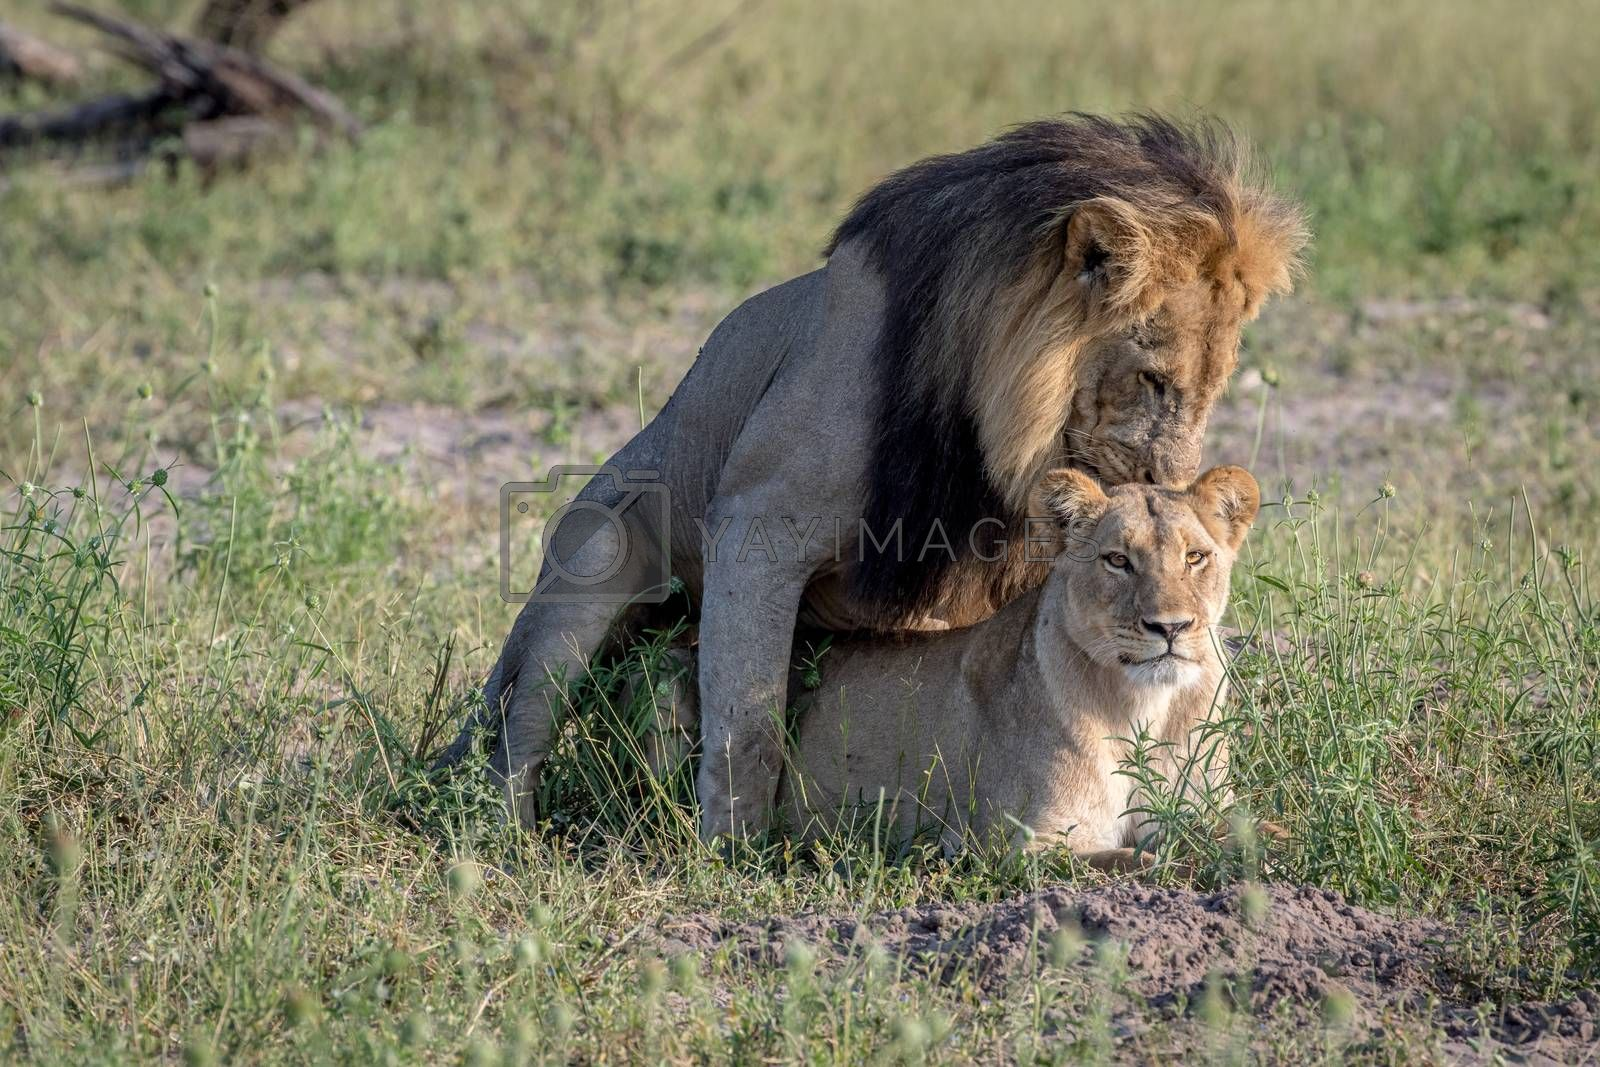 Lions mating in the grass in the Chobe National Park, Botswana.